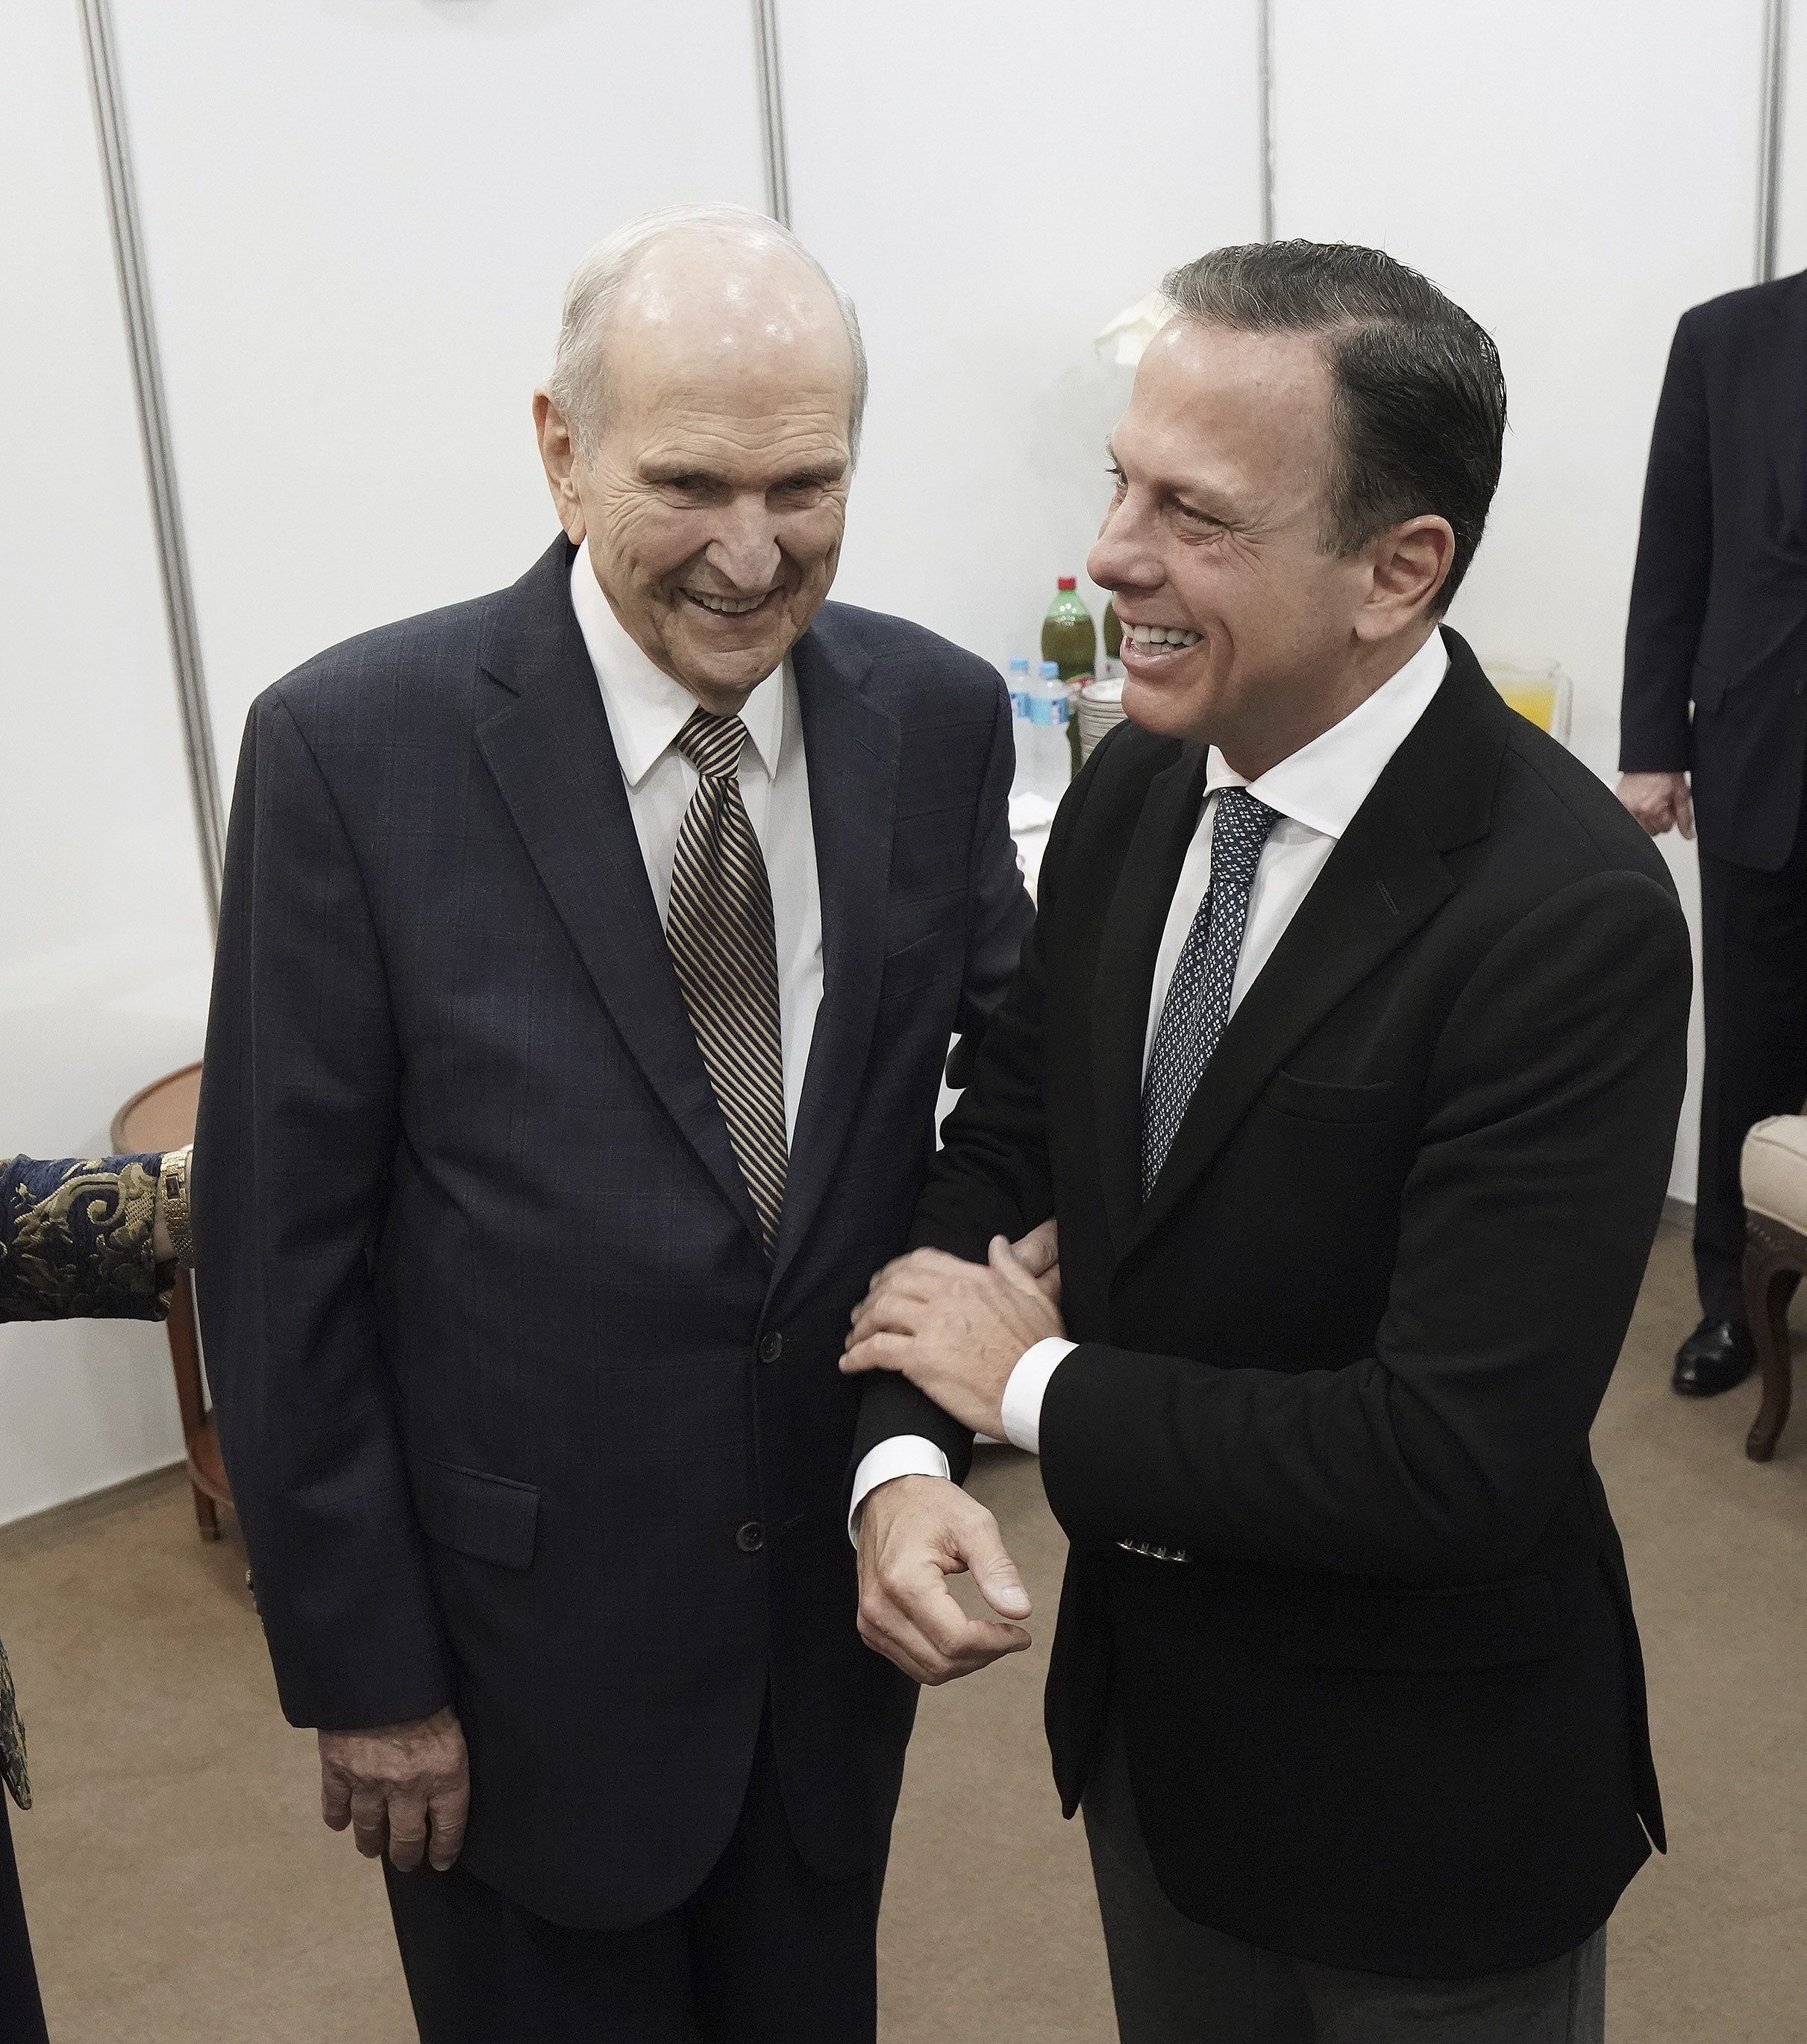 President Russell M. Nelson of The Church of Jesus Christ of Latter-day Saints greets with Sao Paulo Governor João Doria in Sao Paulo, Brazil, on Sunday, Sept. 1, 2019.